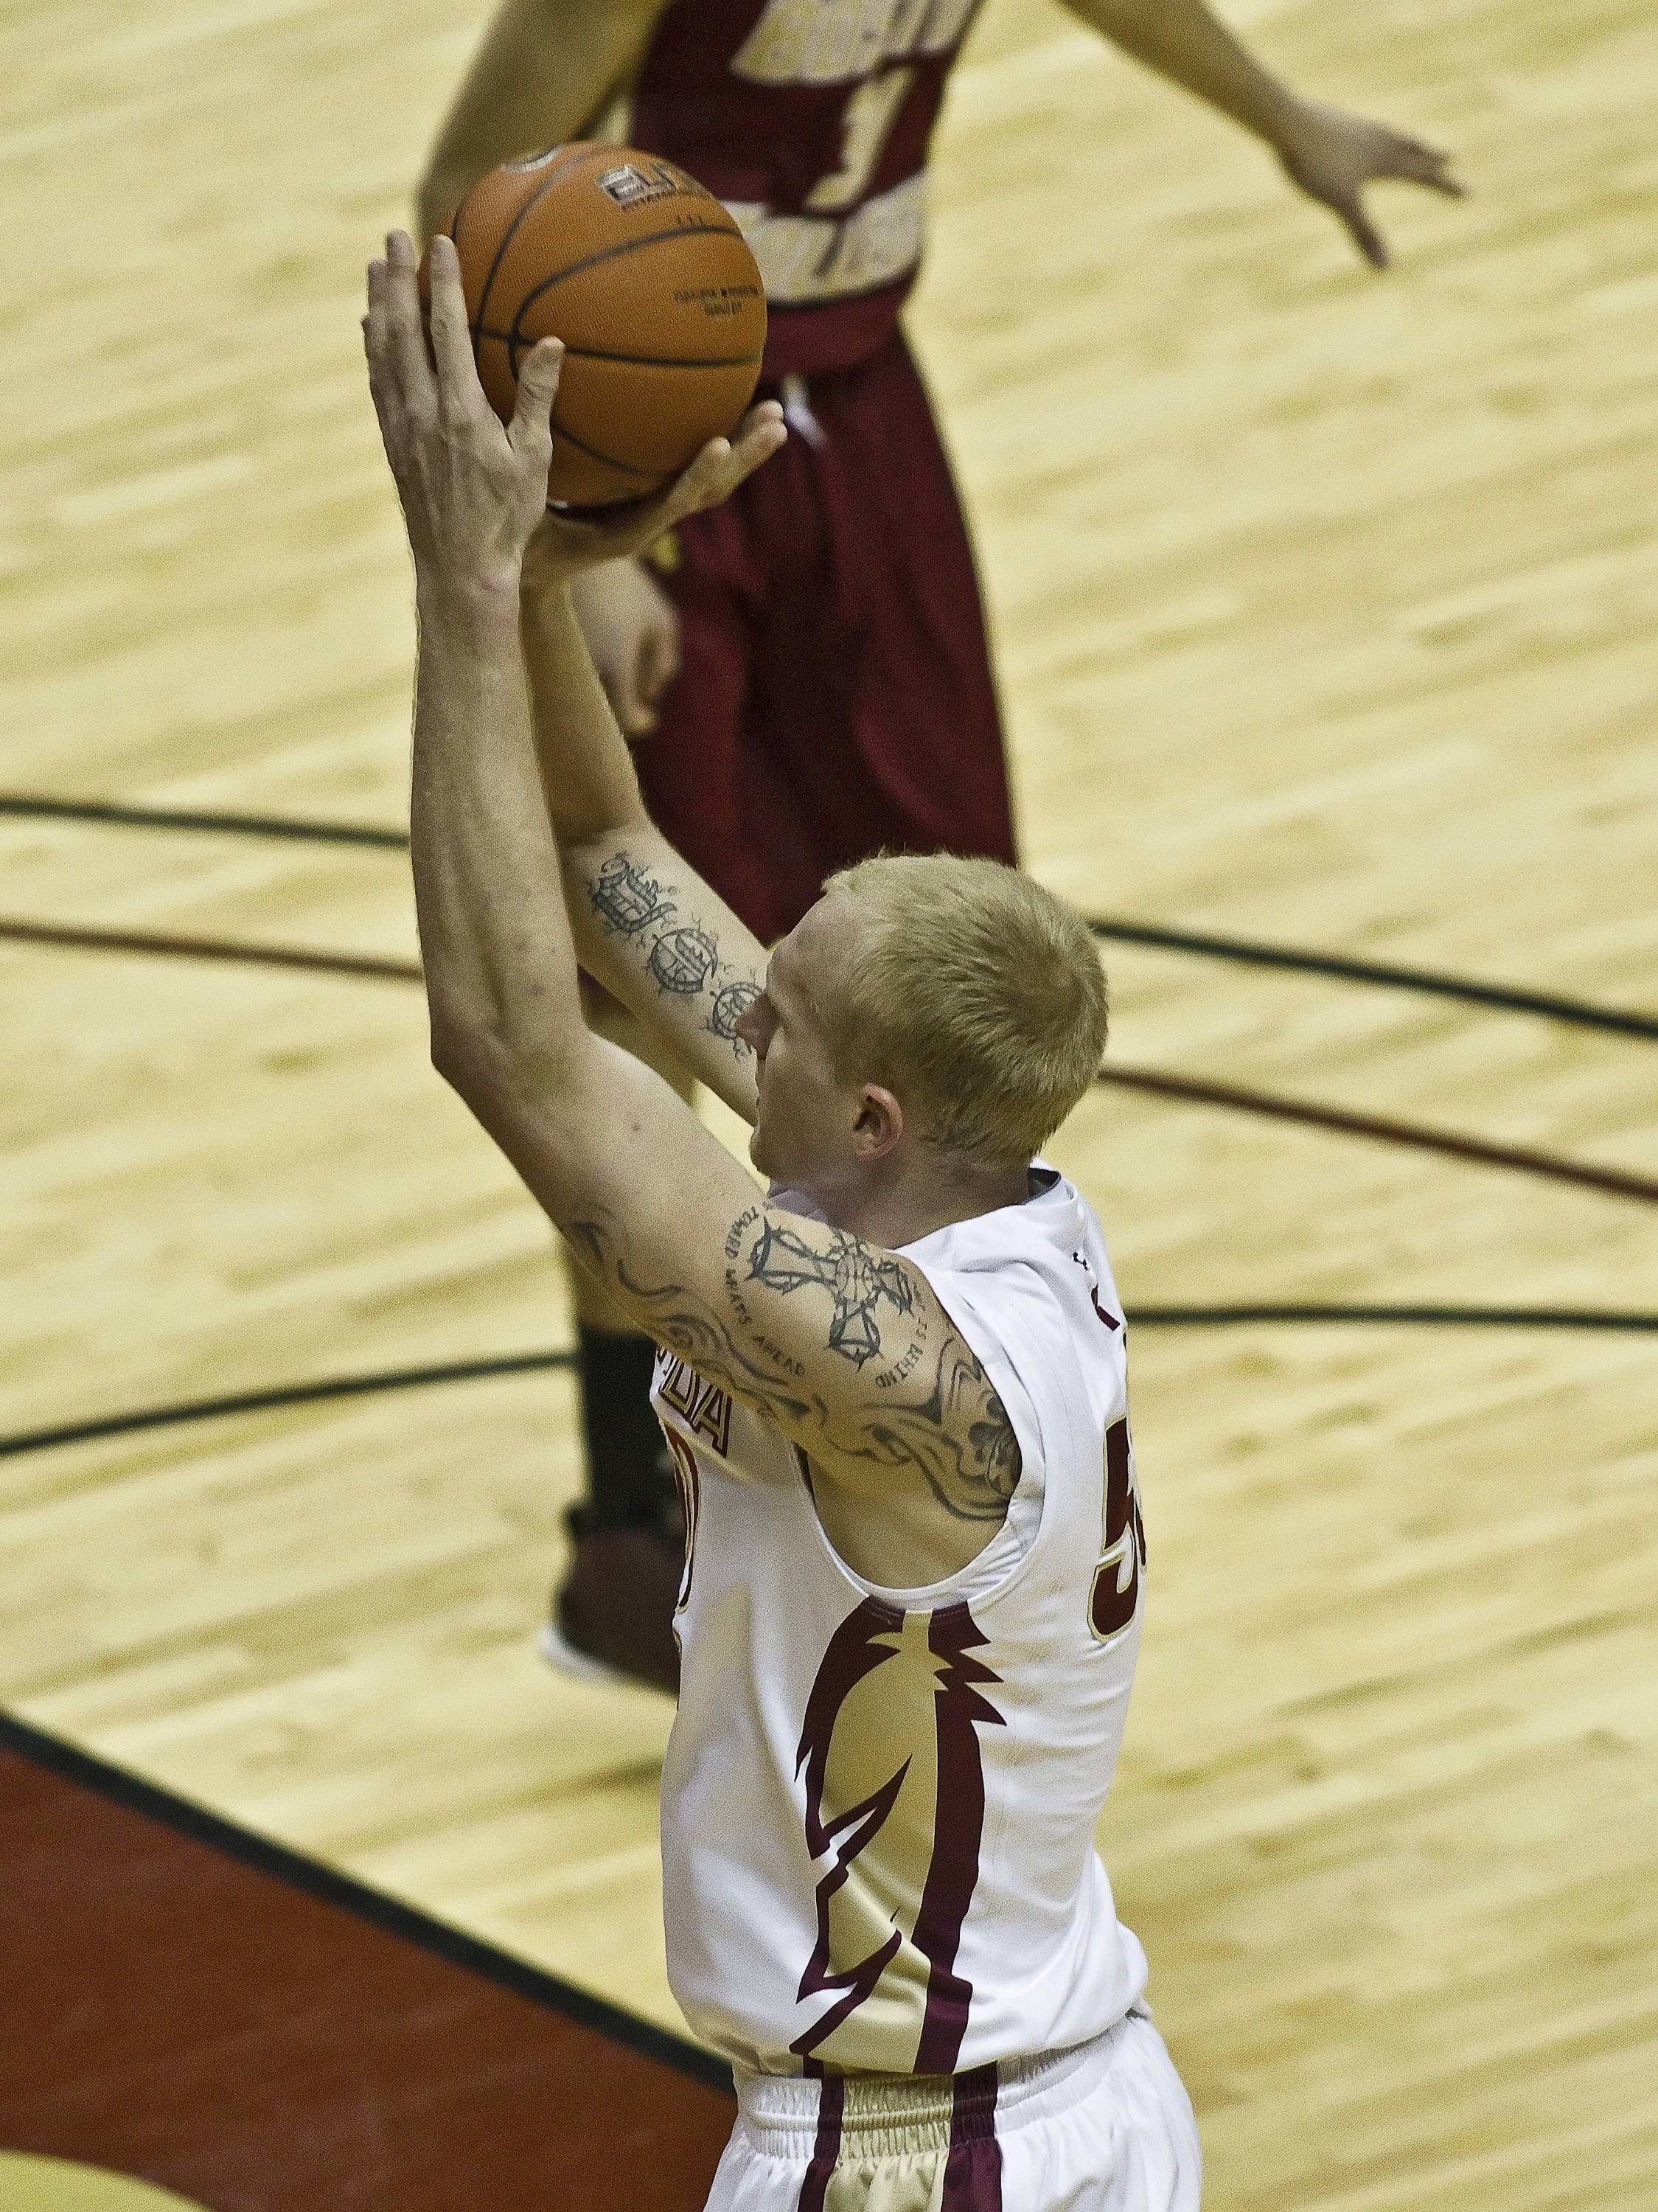 FSU vs Boston College - 01/22/11 - Jon Kreft (50)